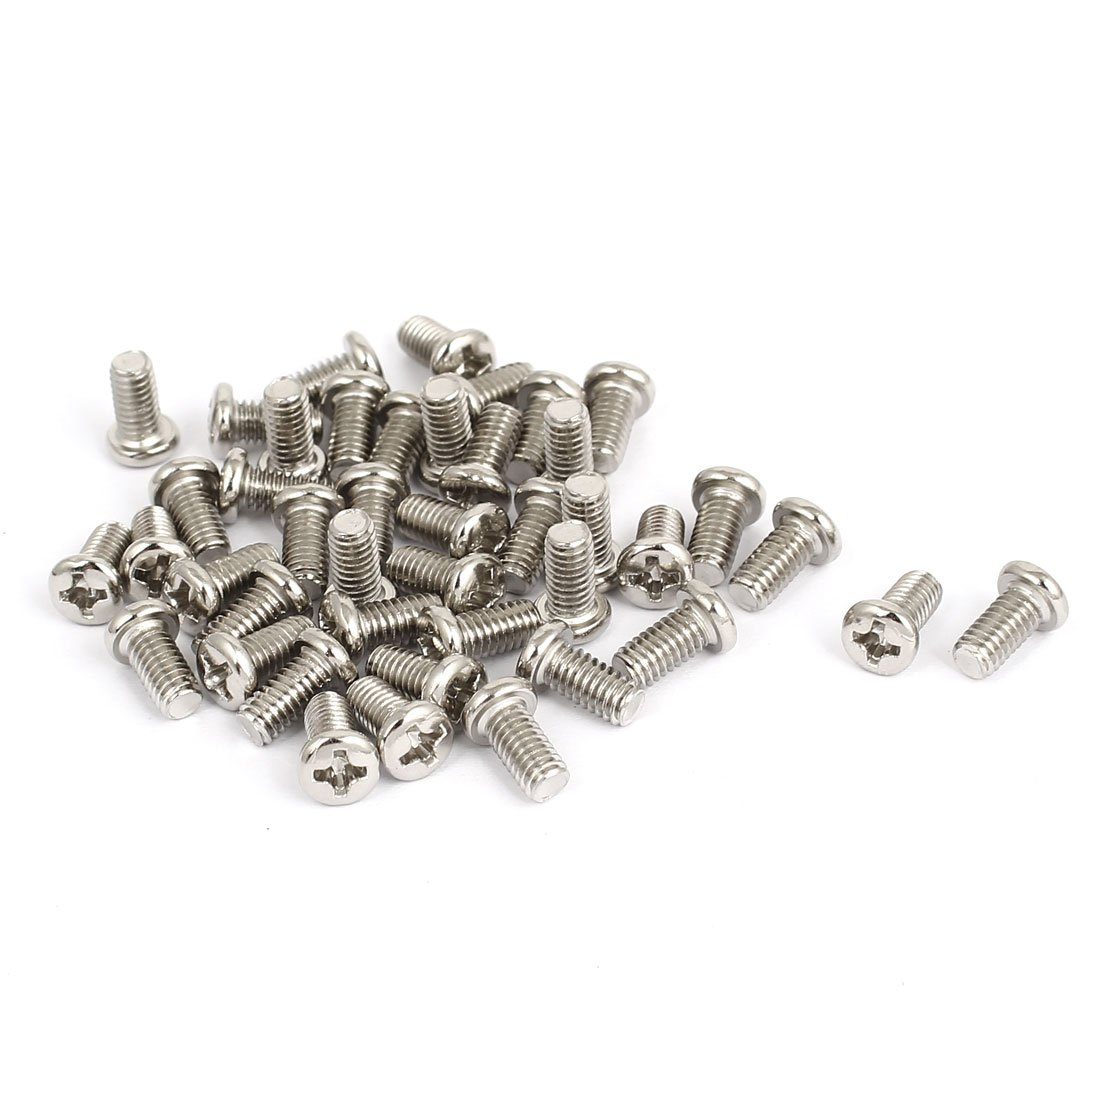 Dragonmarts BISS Uxcell a15121000ux0158 M4x8mm Thread 0.7mm Pitch Phillips Cross Head Bolt Machine Screw Pack of 40